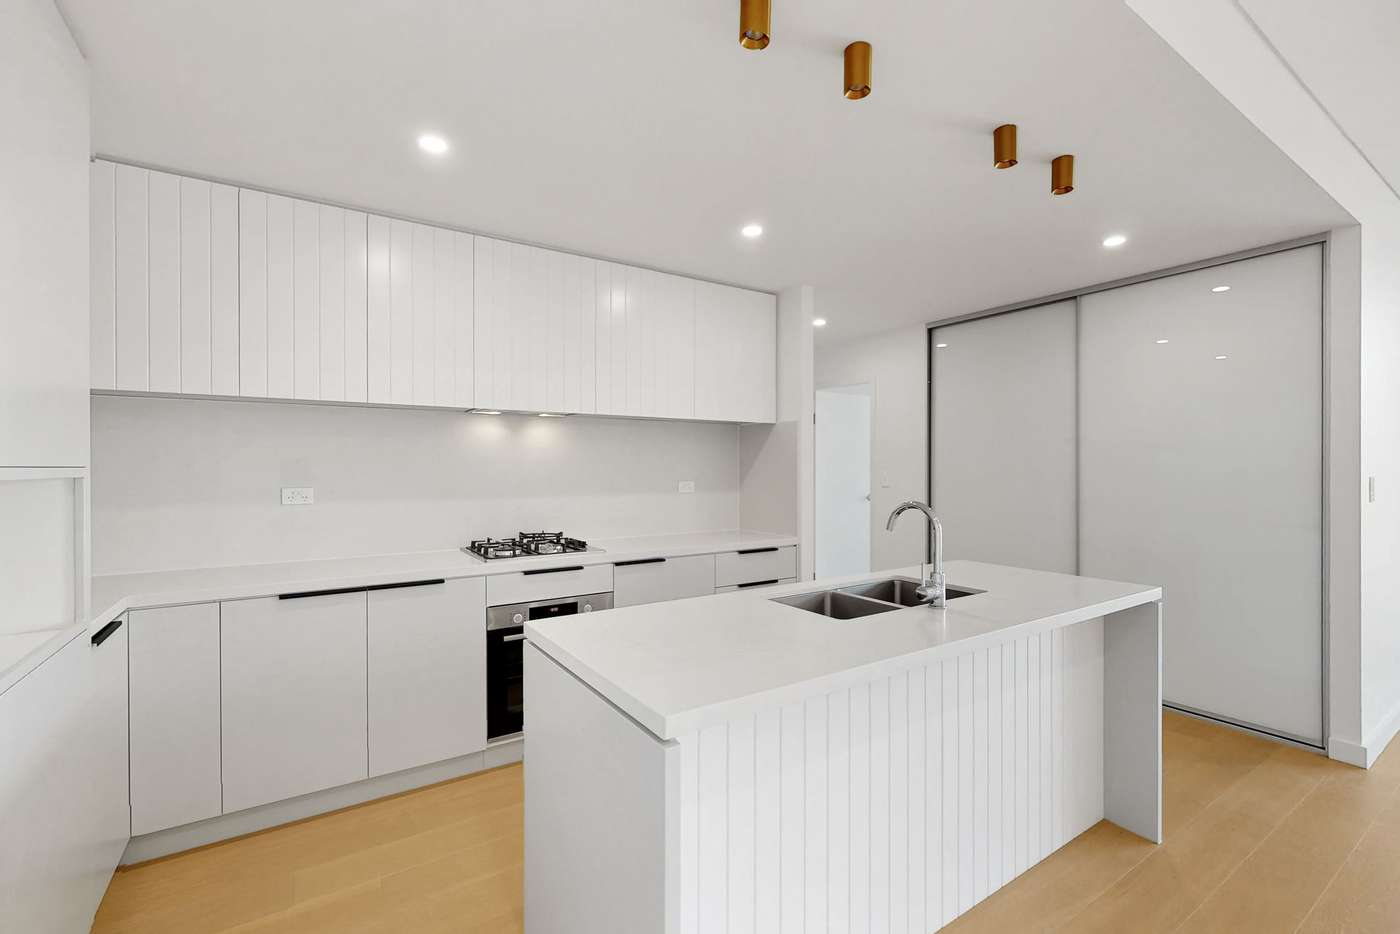 Main view of Homely apartment listing, 233/2 Gerbera Place, Kellyville NSW 2155